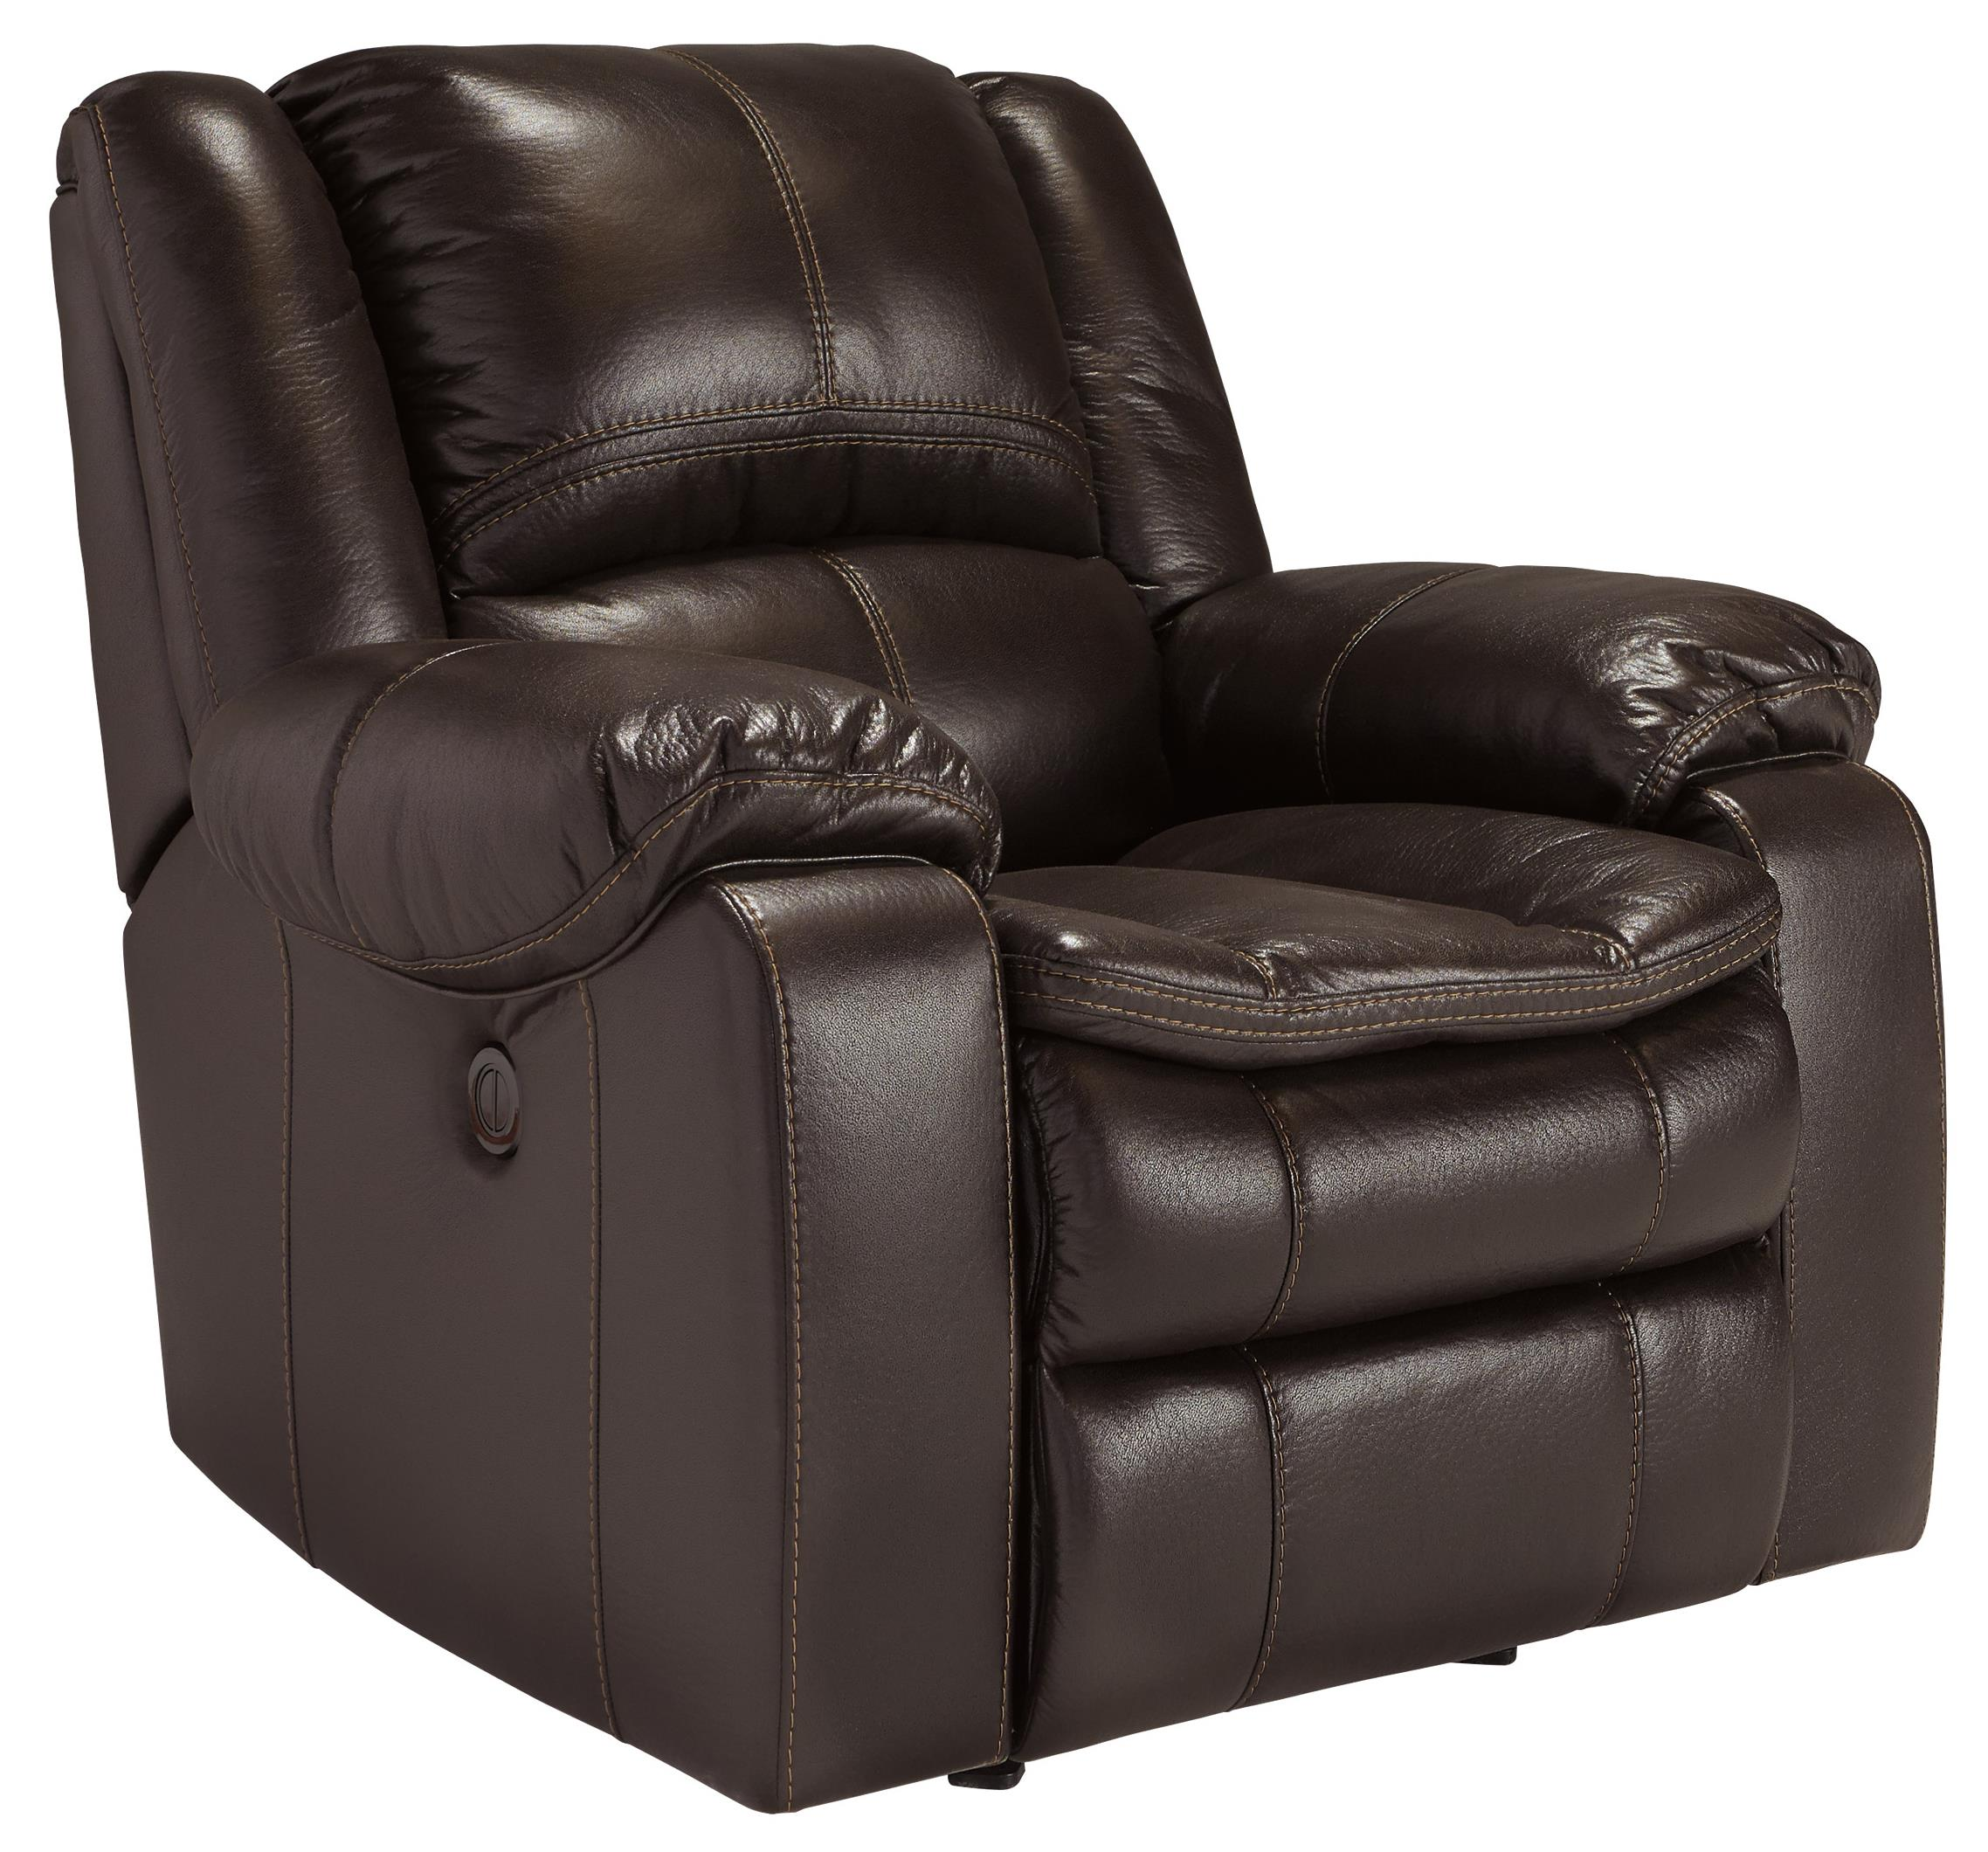 Signature Design by Ashley Long Knight Rocker Recliner - Item Number: 8890525